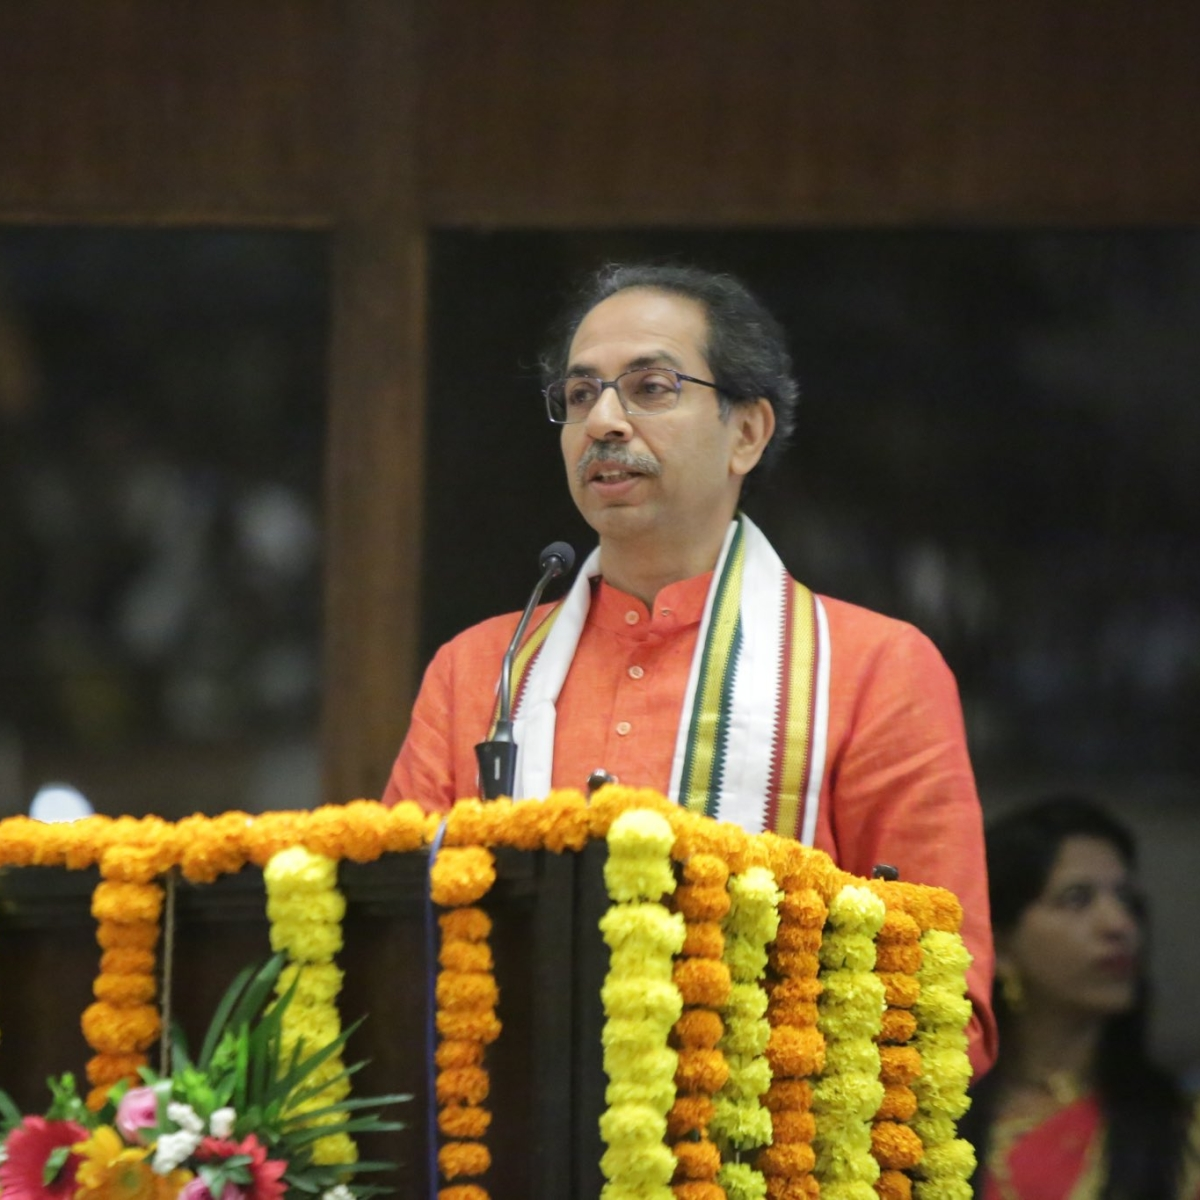 CM Uddhav Thackeray may take oath again if Governor doesn't clear nomination before May 28